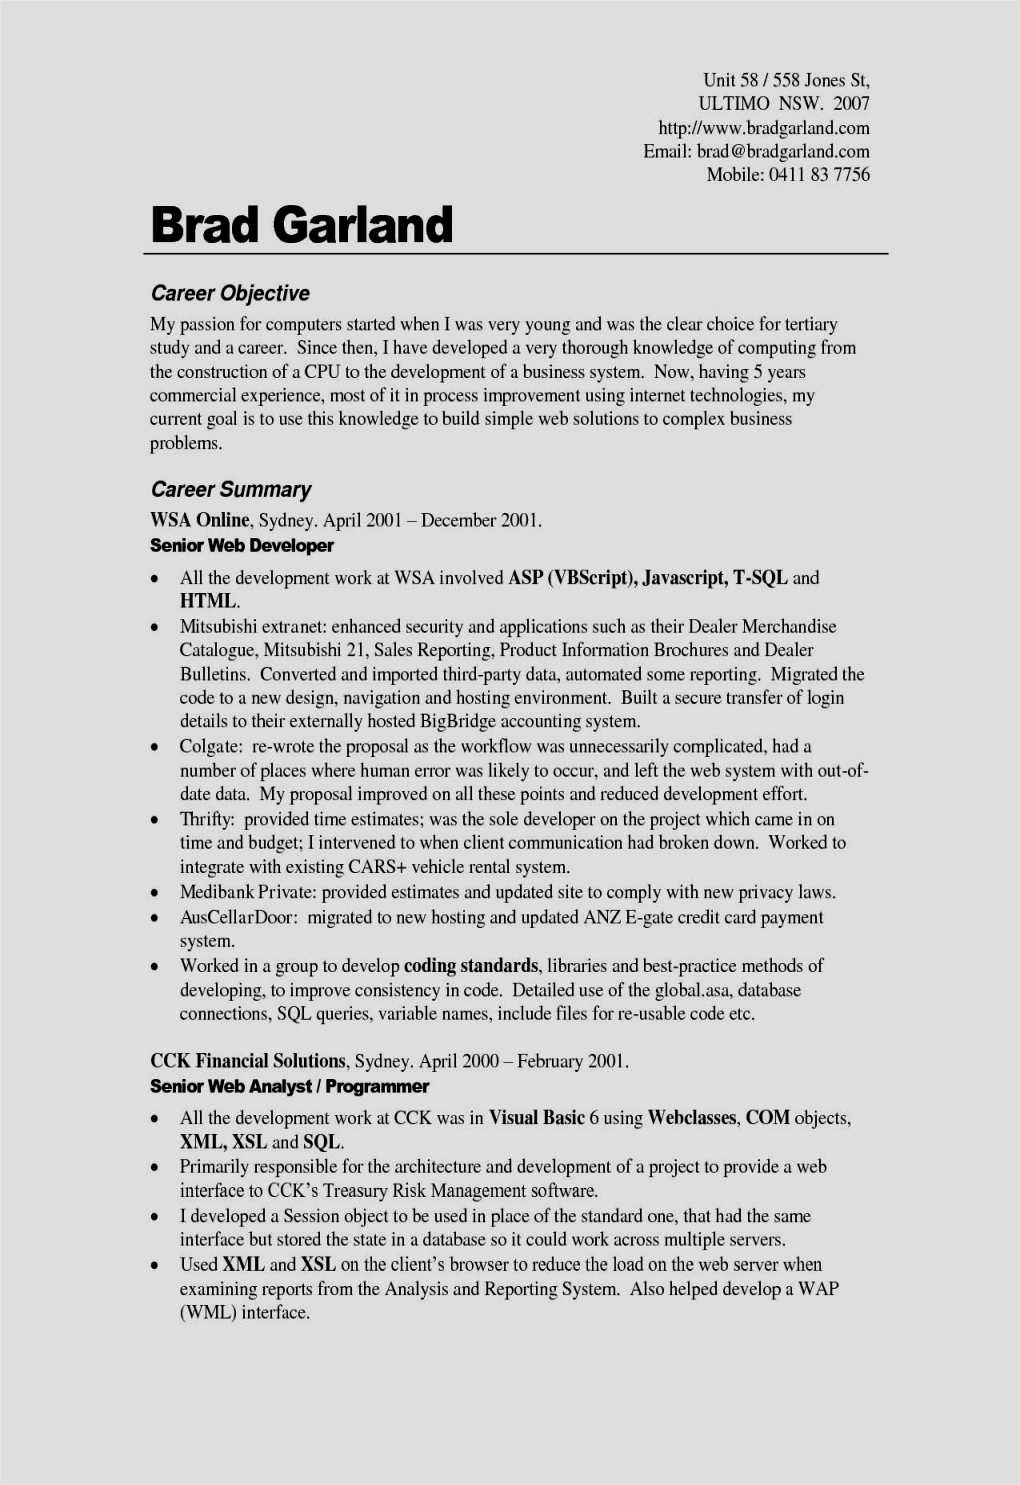 Professional Resume Cover Letter - Cover Letter How to Start Free Resume Templates